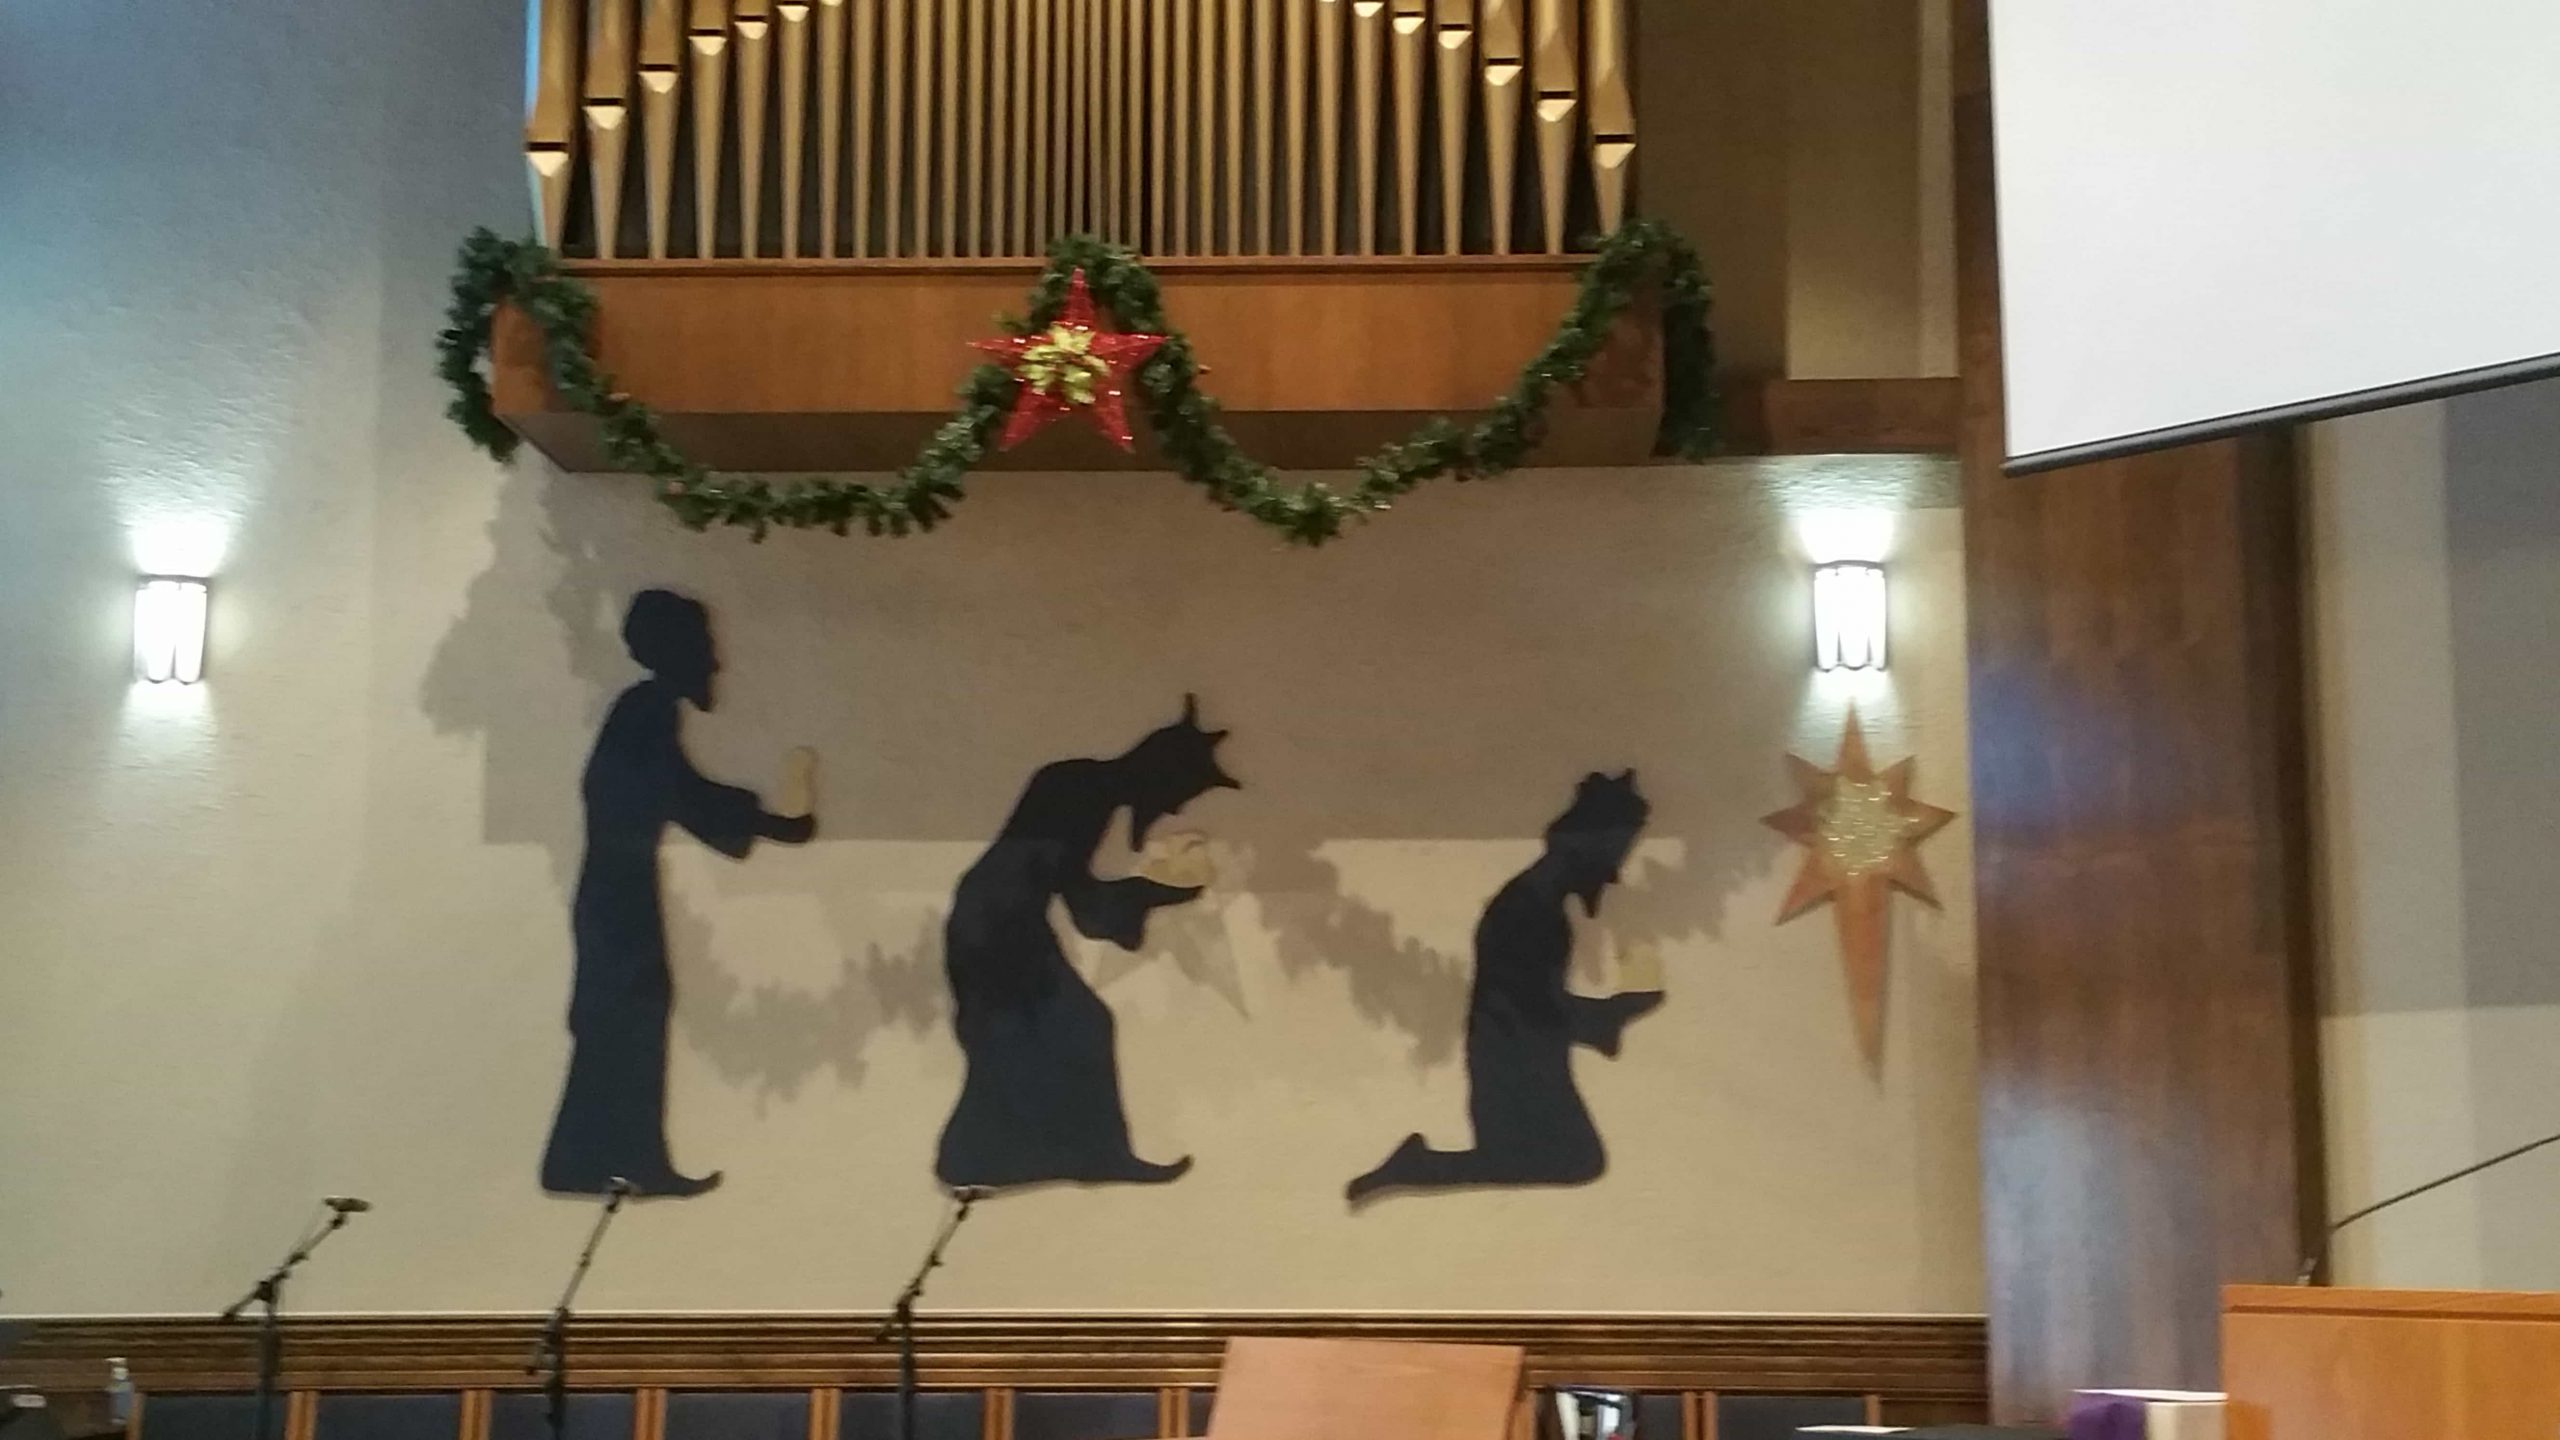 Blessed Trinity Christmas Decorations 2017 - 5